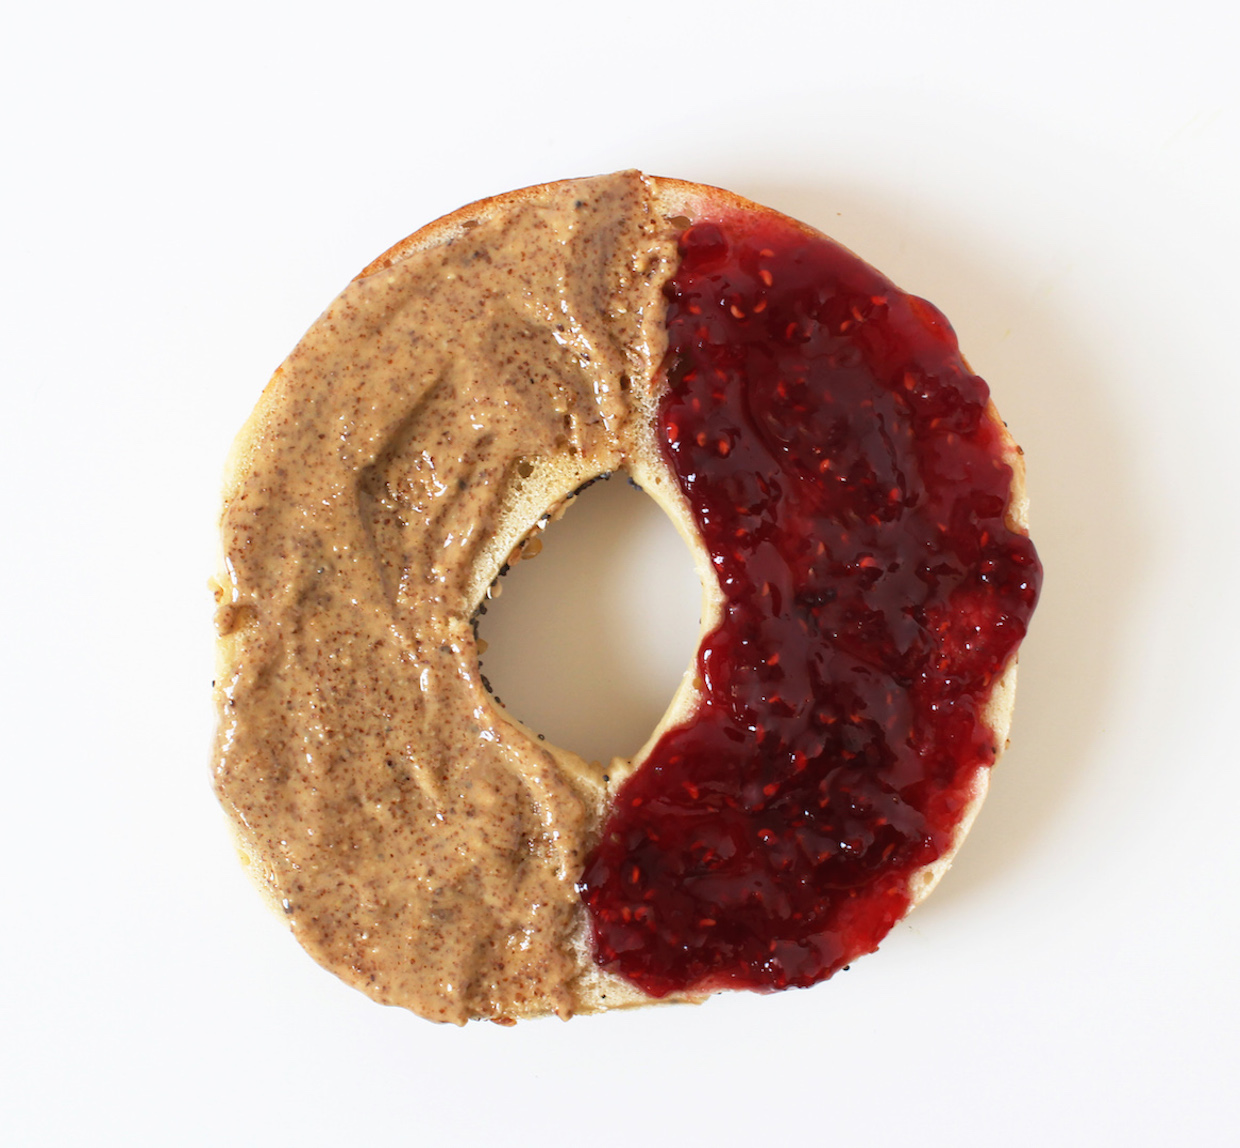 peanut-butter-and-jelly-bagel